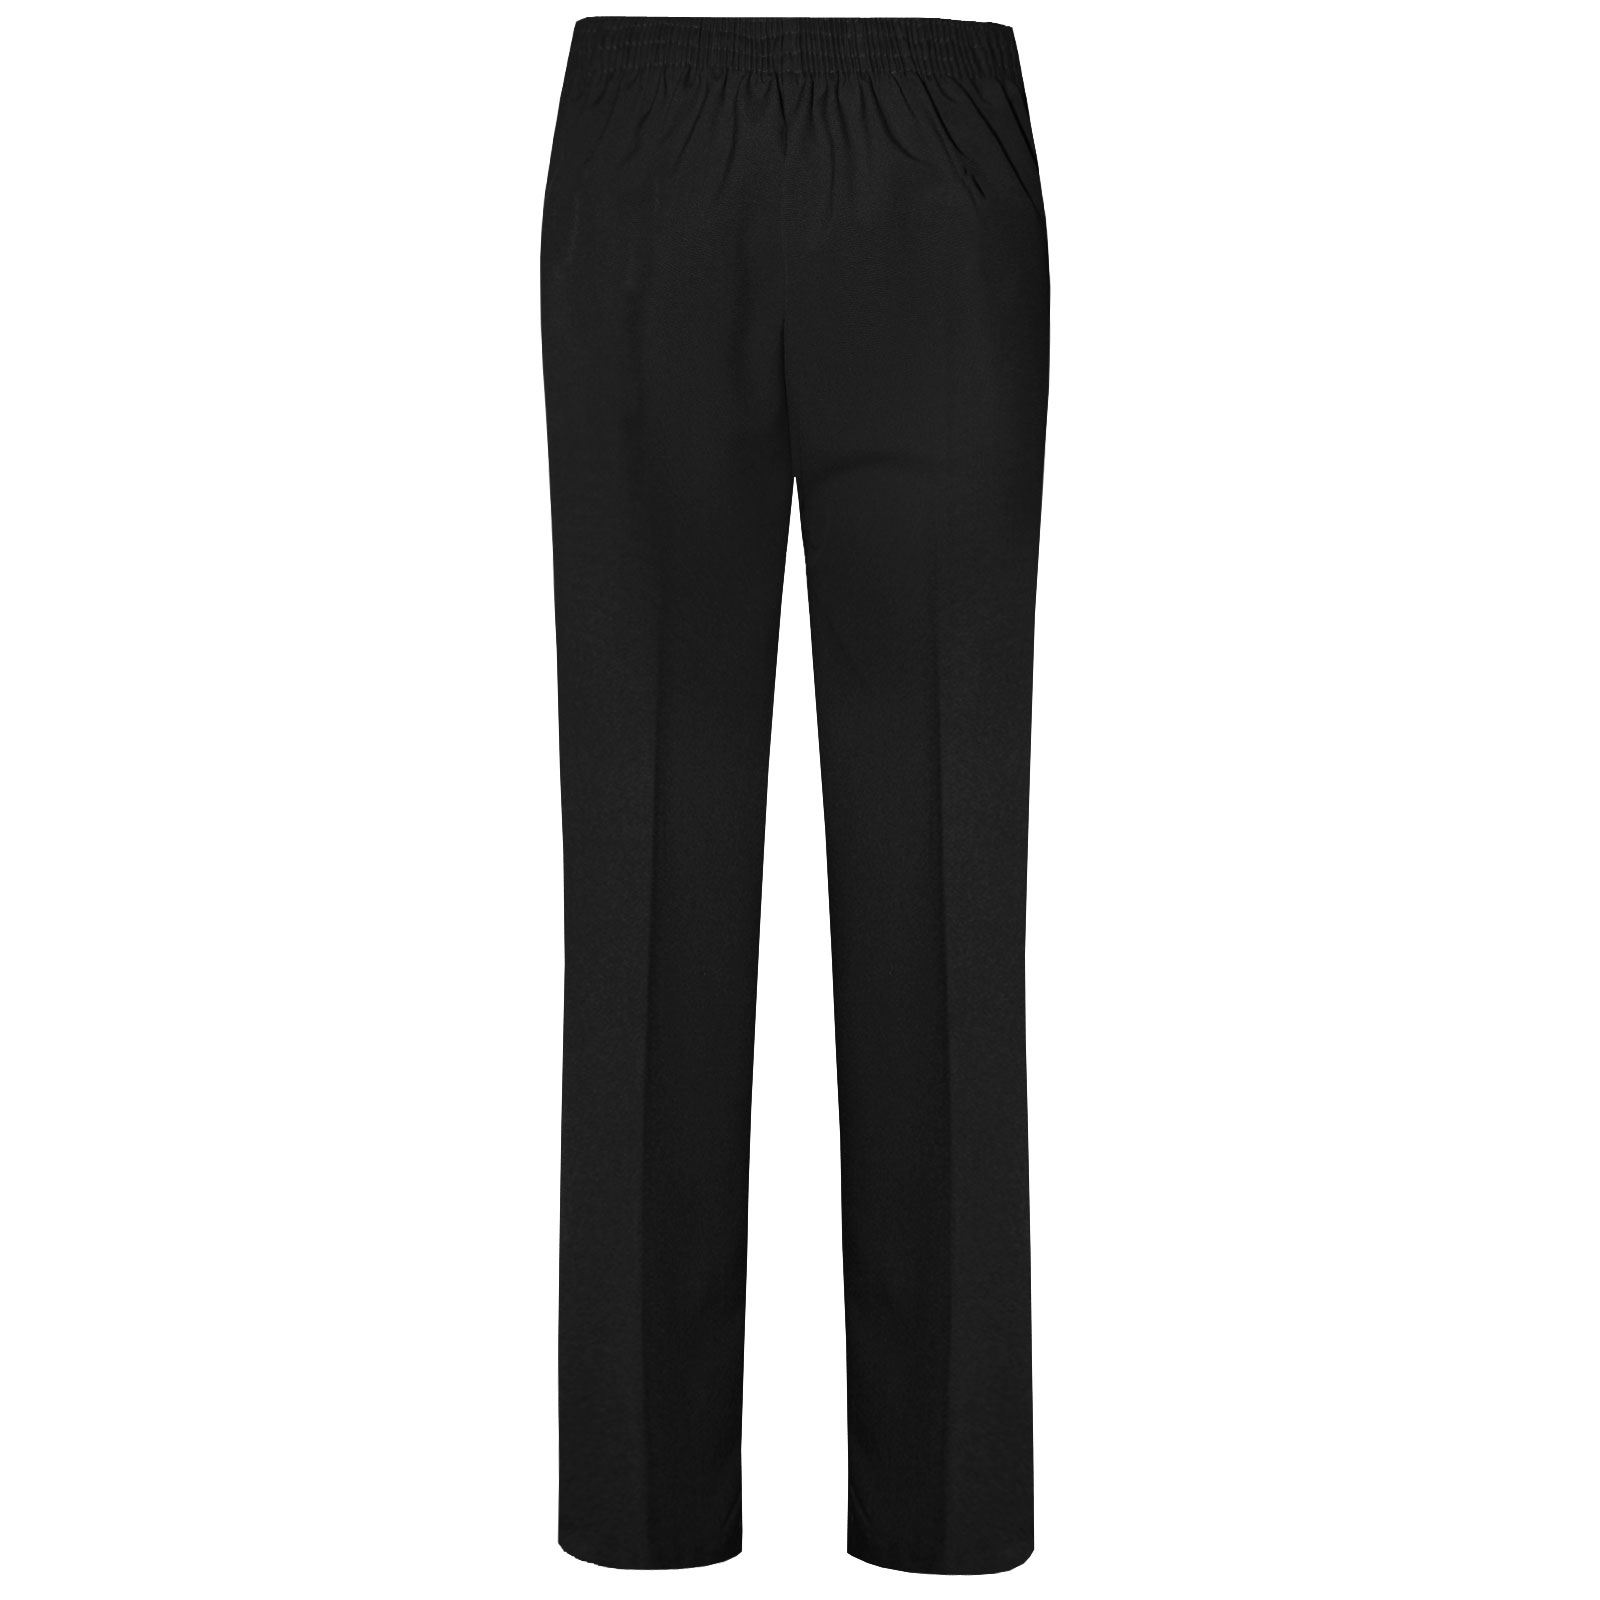 WOMENS LADIES HALF ELASTICATED TROUSERS PANTS GIRLS SCHOOL OFFICE CLASSIC BOTTOM